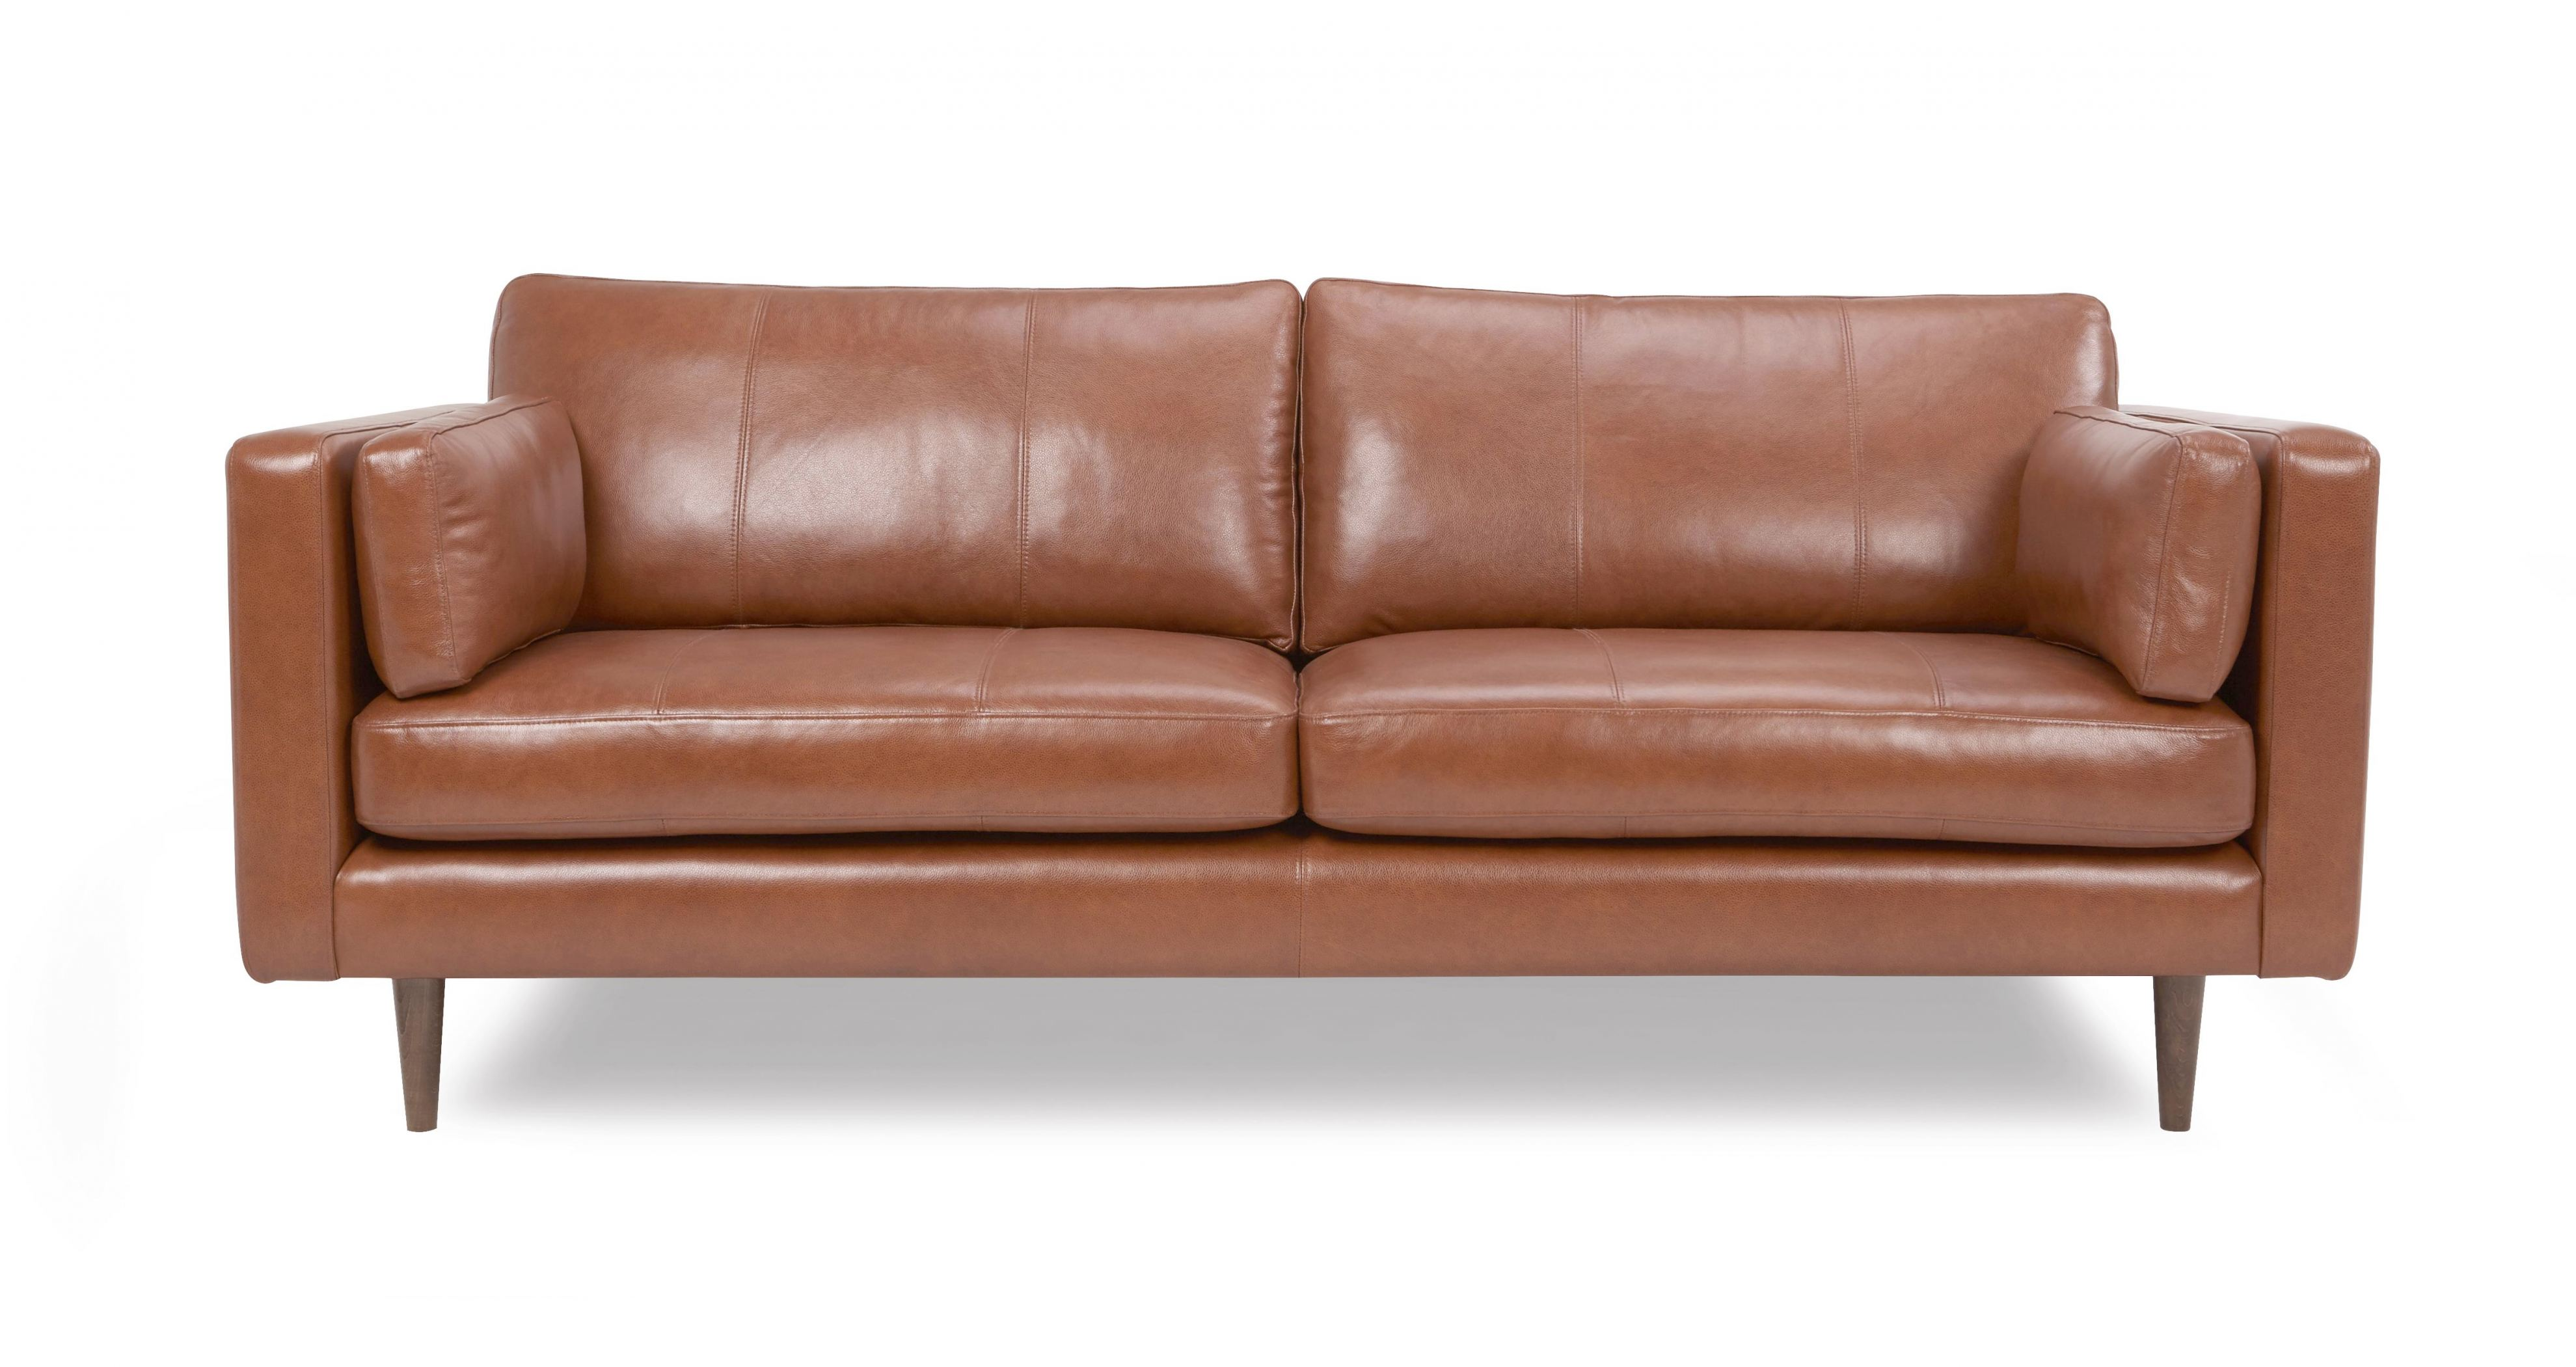 top bradington young leather sofa picture-Incredible Bradington Young Leather sofa Pattern